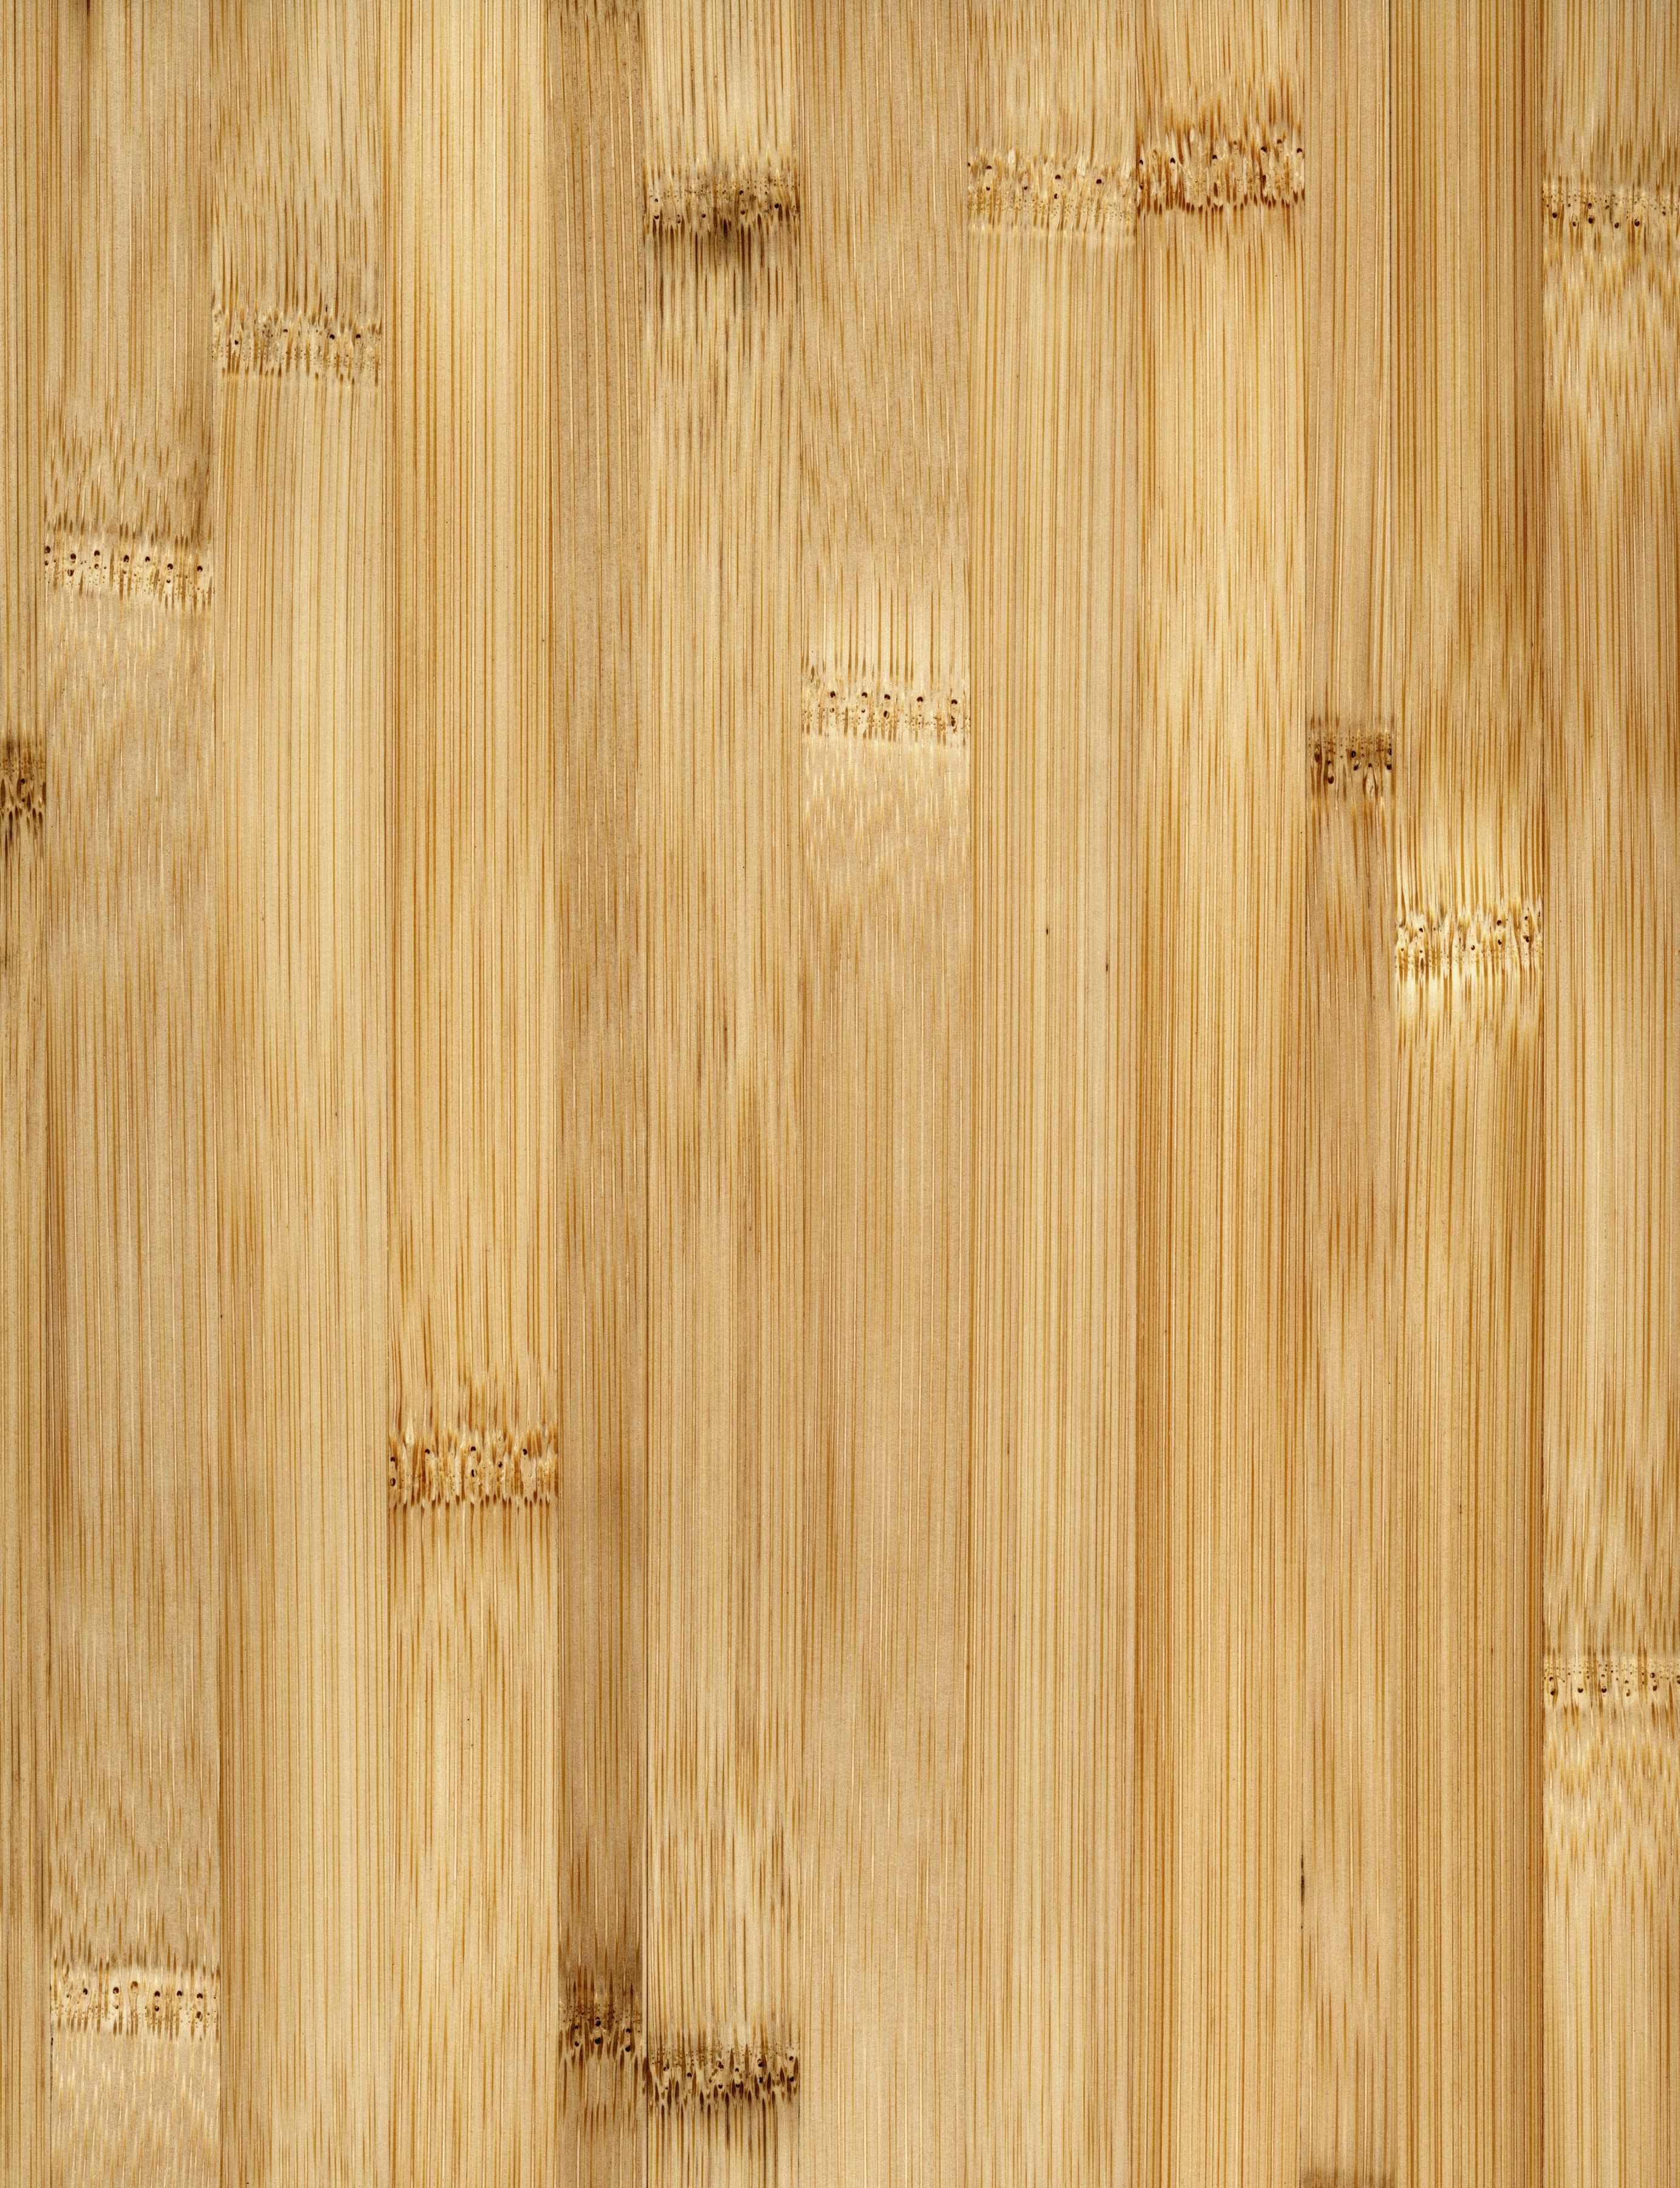 bamboo hardwood flooring prices of bamboo flooring buying guide within bamboo floor full frame 200266305 001 59a4517bd963ac00118a3d9f